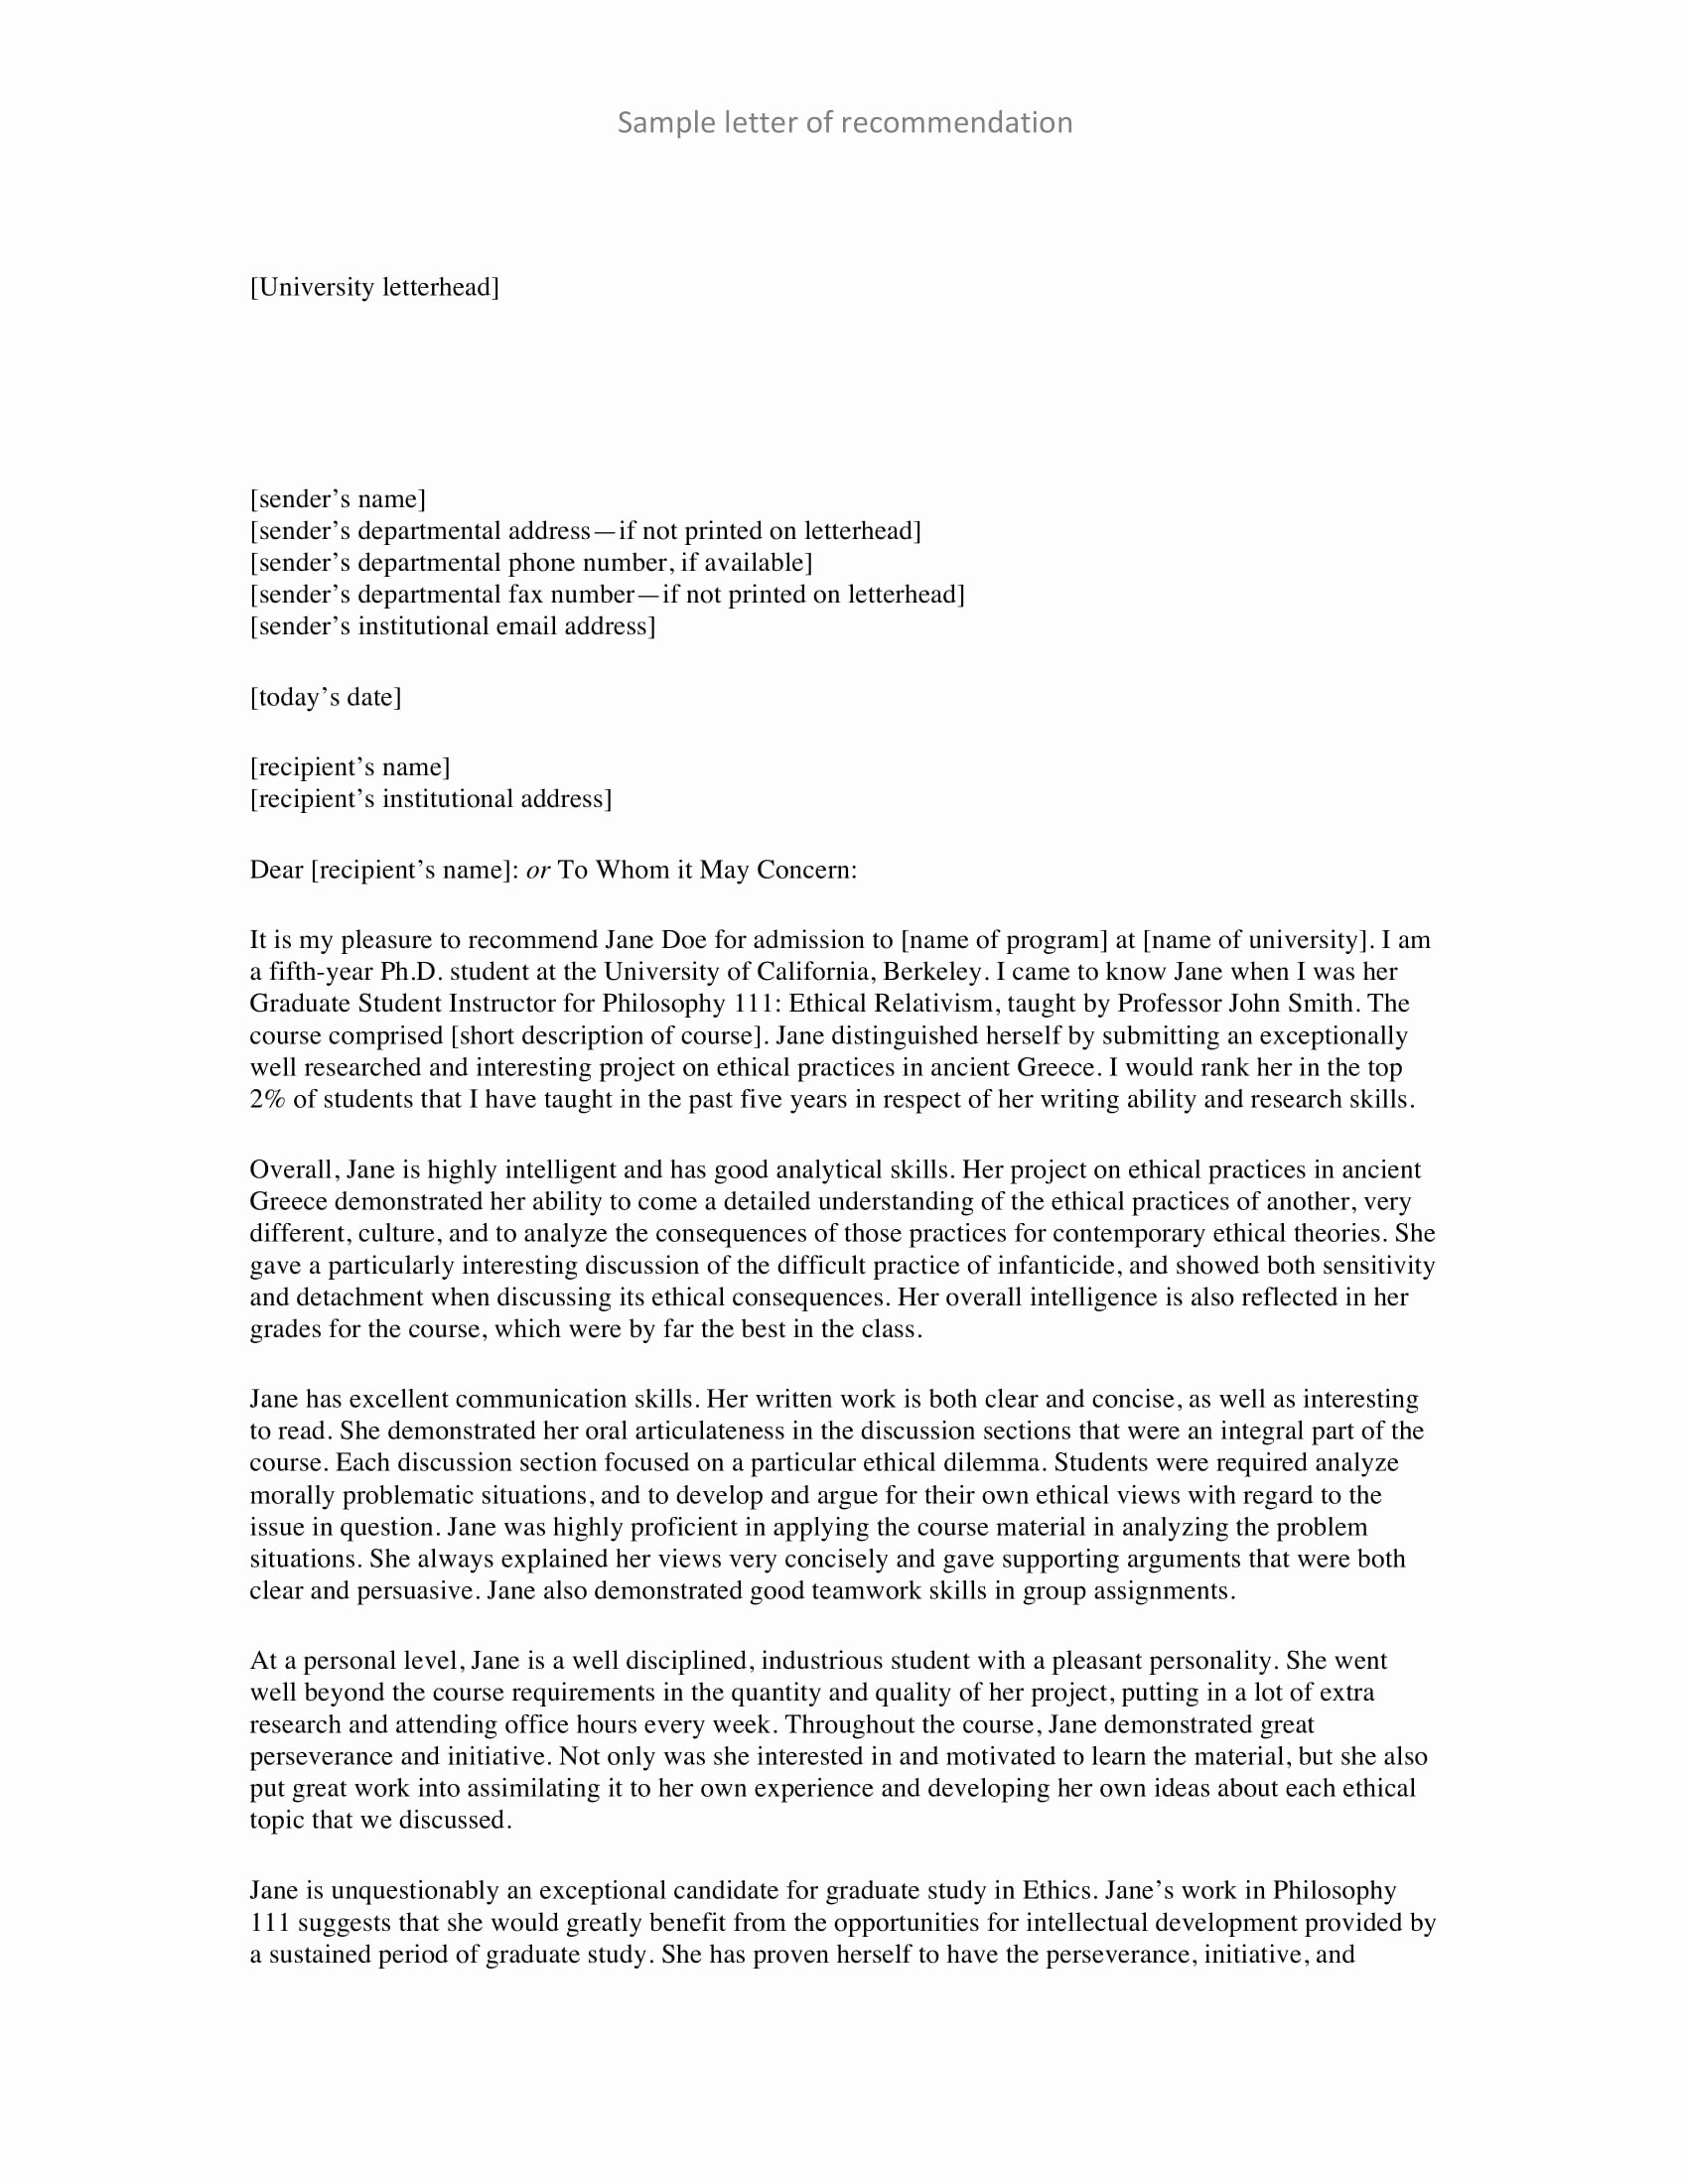 Confidential Letter Of Recommendation Elegant 9 Personal Re Mendation Letter Examples Pdf